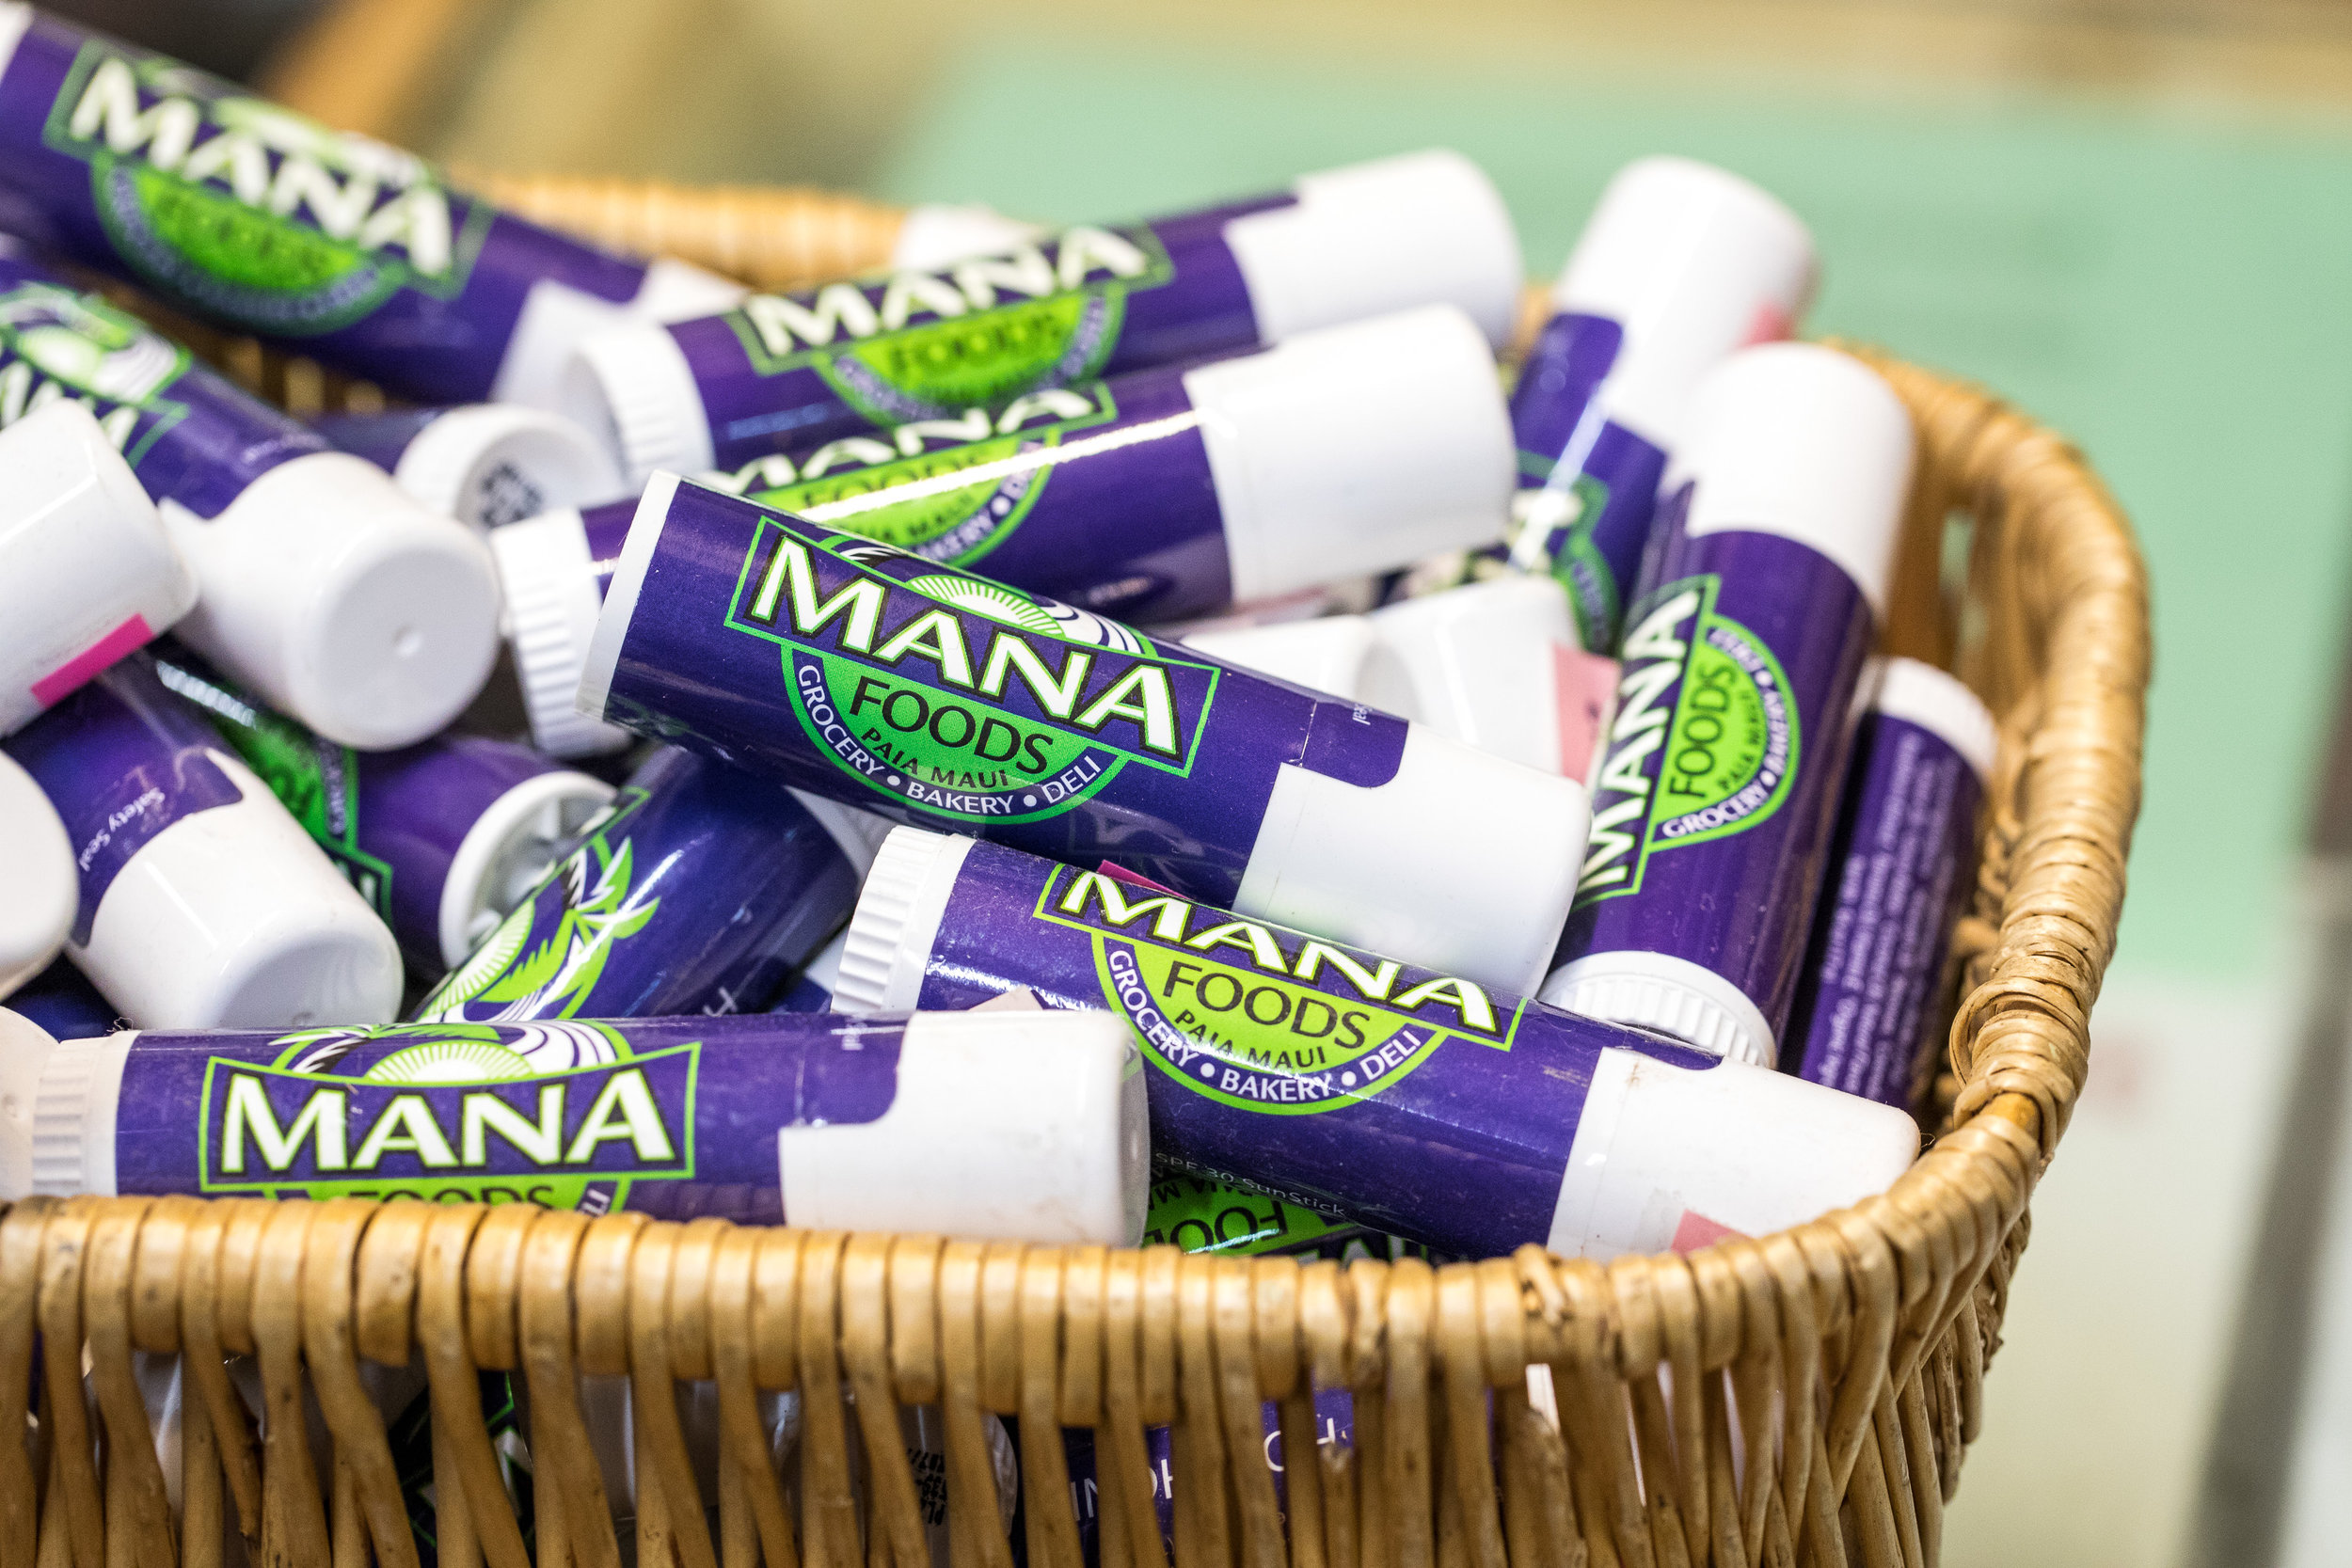 mana-foods-lip-balm-maui-hawaii.jpg